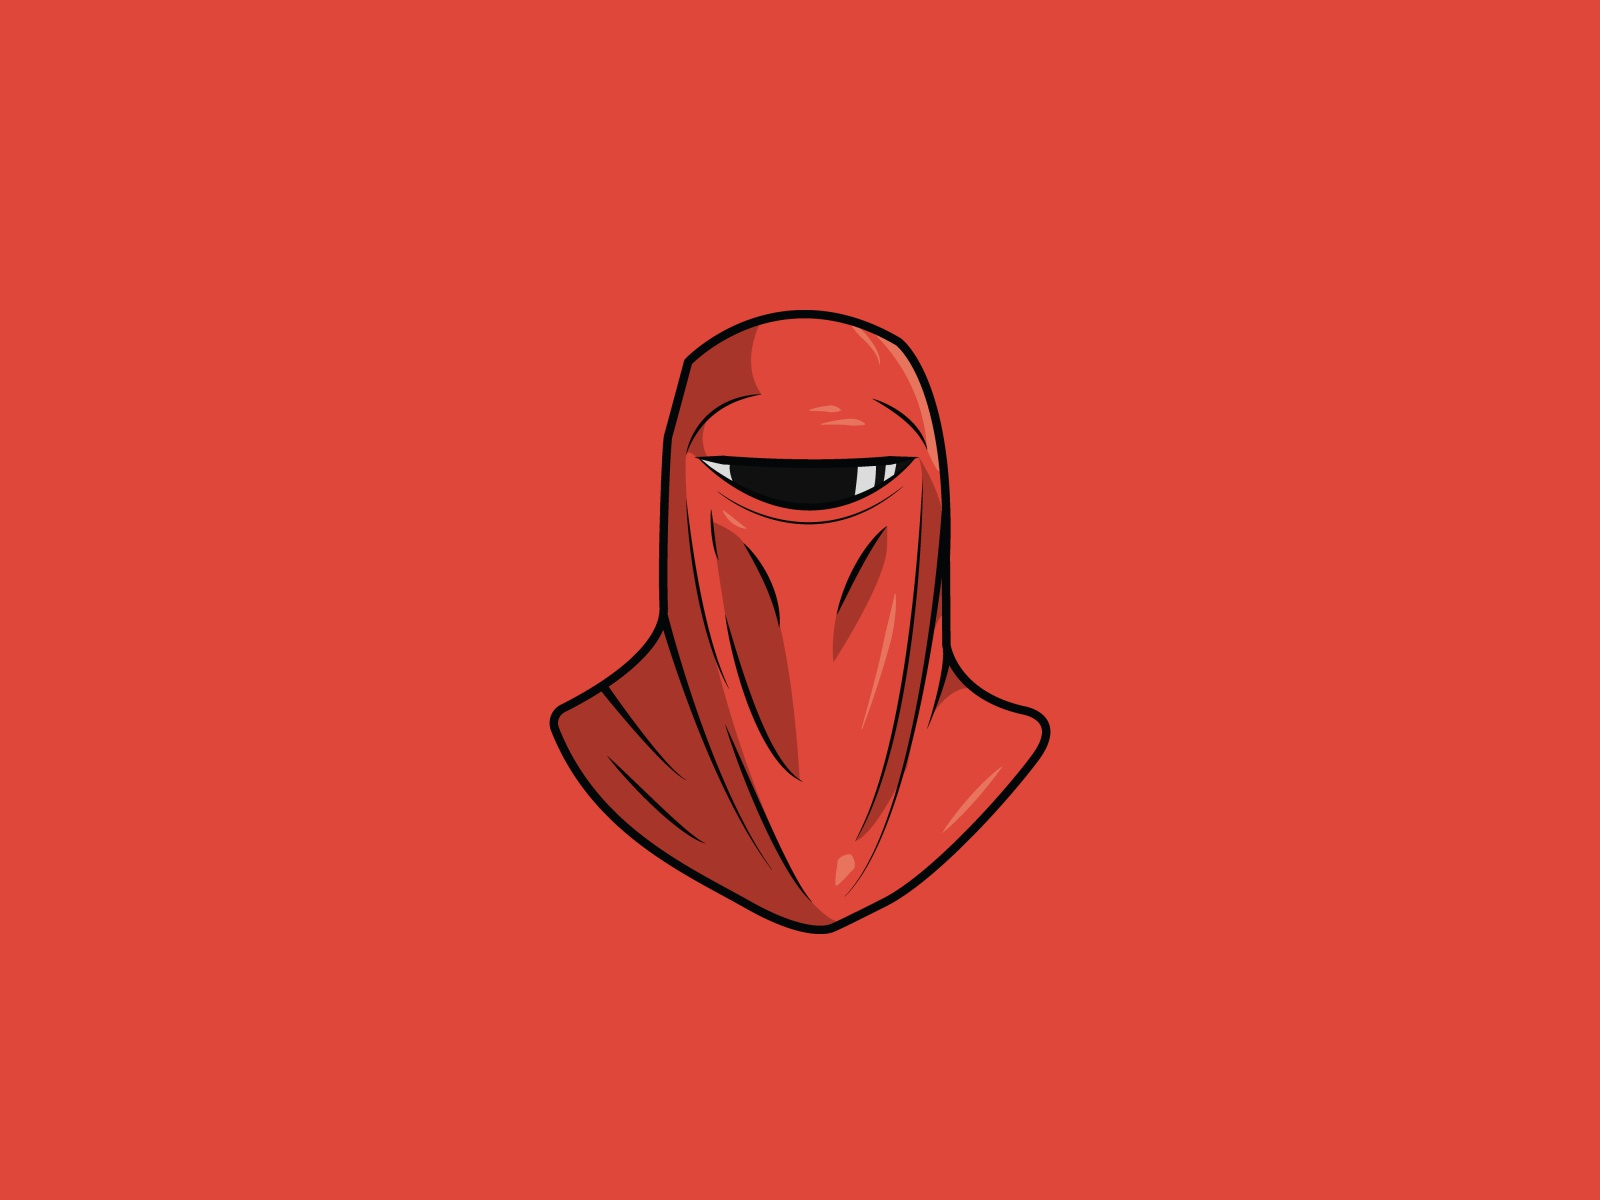 Imperial Royal Guard Star Wars By Wirral Graphic Designer On Dribbble